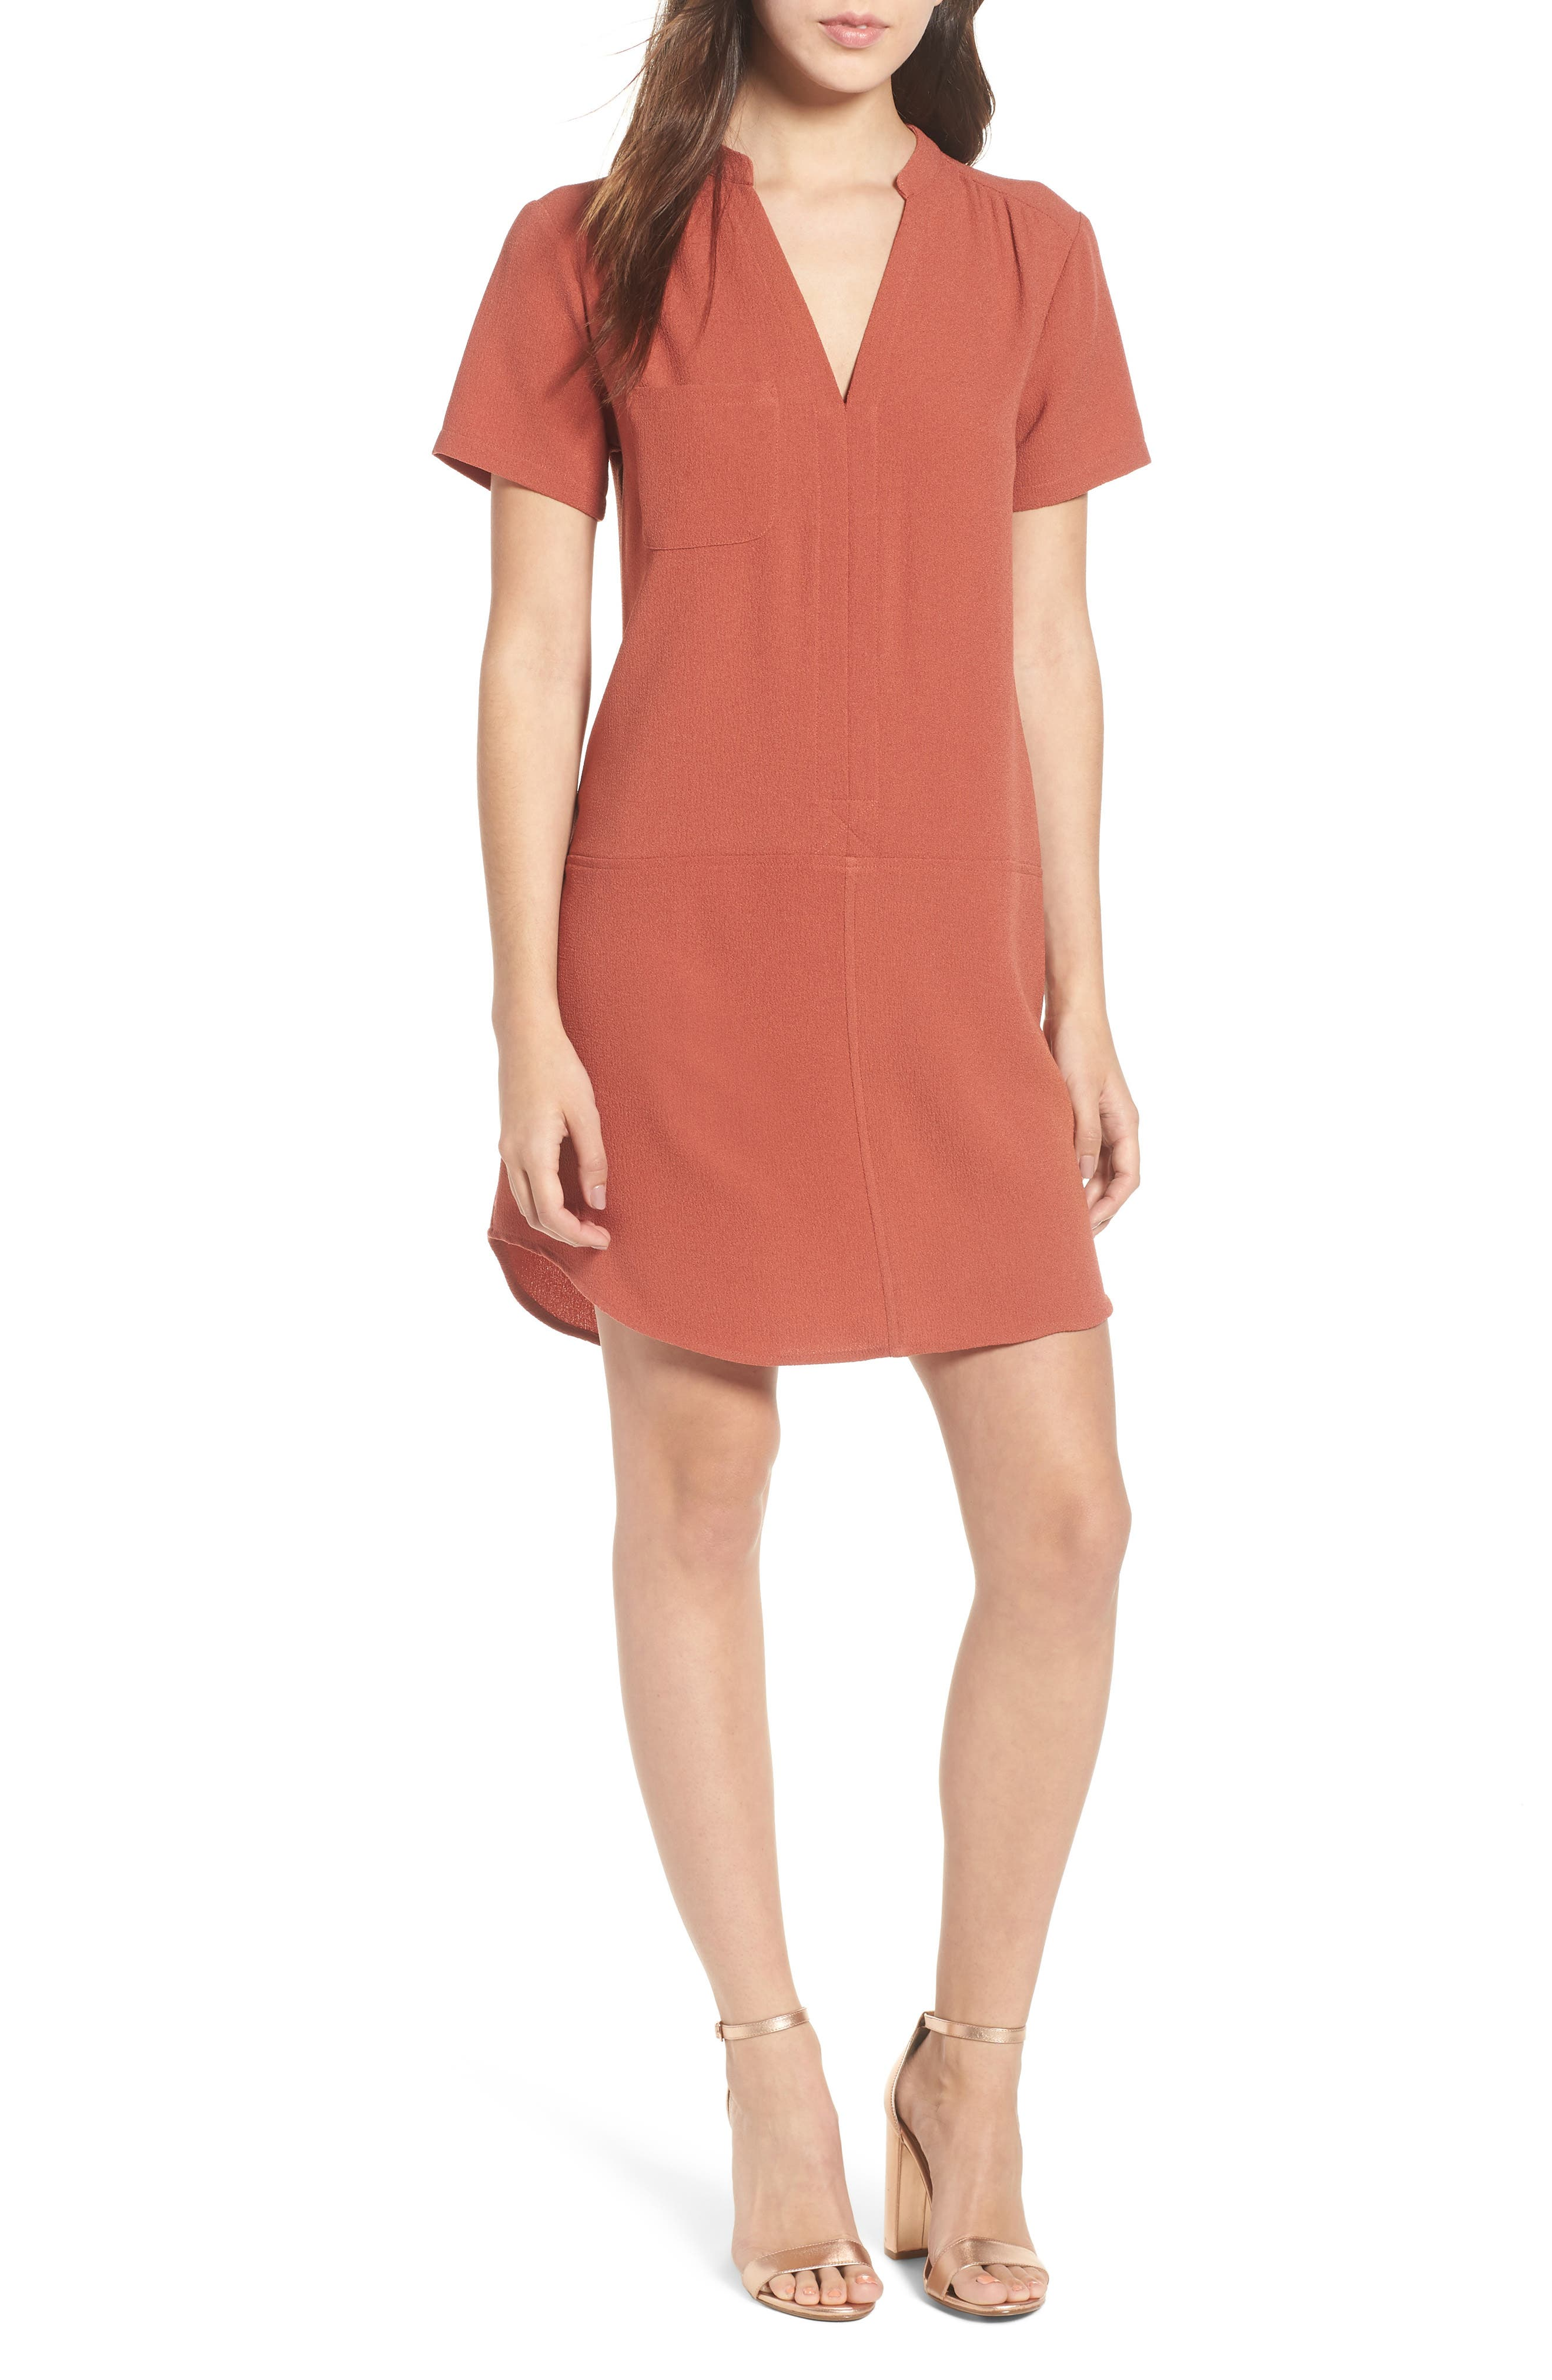 Cocktail Dresses with Sleeves for Weddings